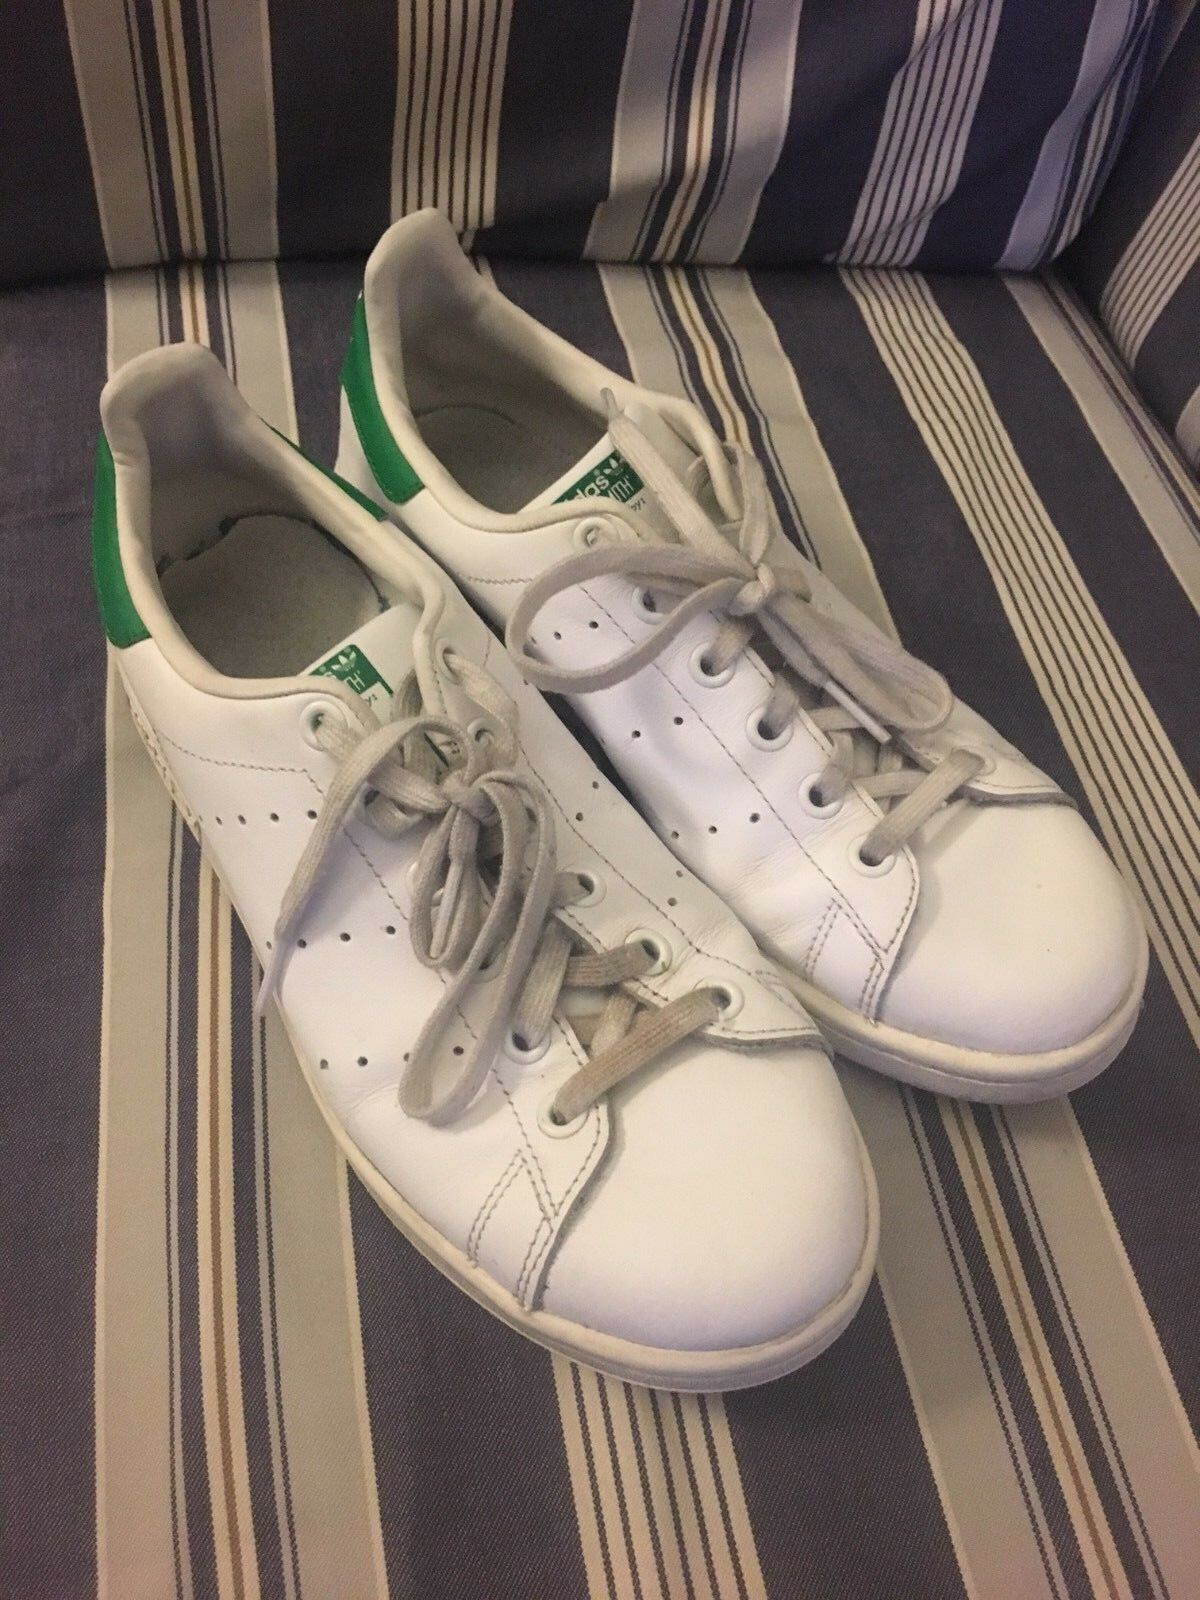 STAN SMITH ADIDAS ADULT SIZE 10 WHITE GREEN Cheap and beautiful fashion